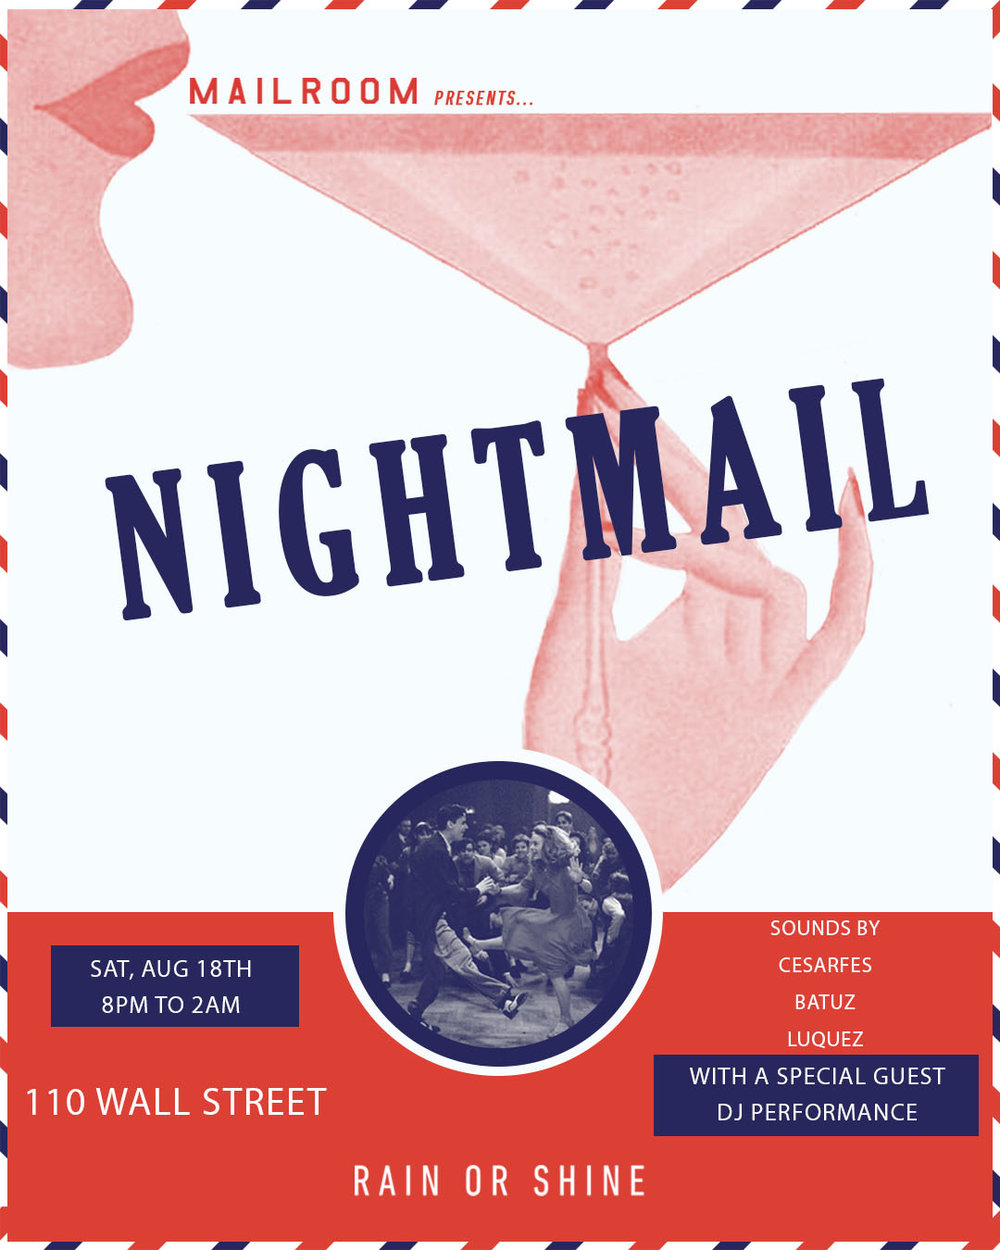 Nightmail - Saturday, August 18th, 2018, 8 PM - 2 AM, Free Entry Sounds by Cesarfes, Batuz, & Luquez with a Special Guest DJ Performance